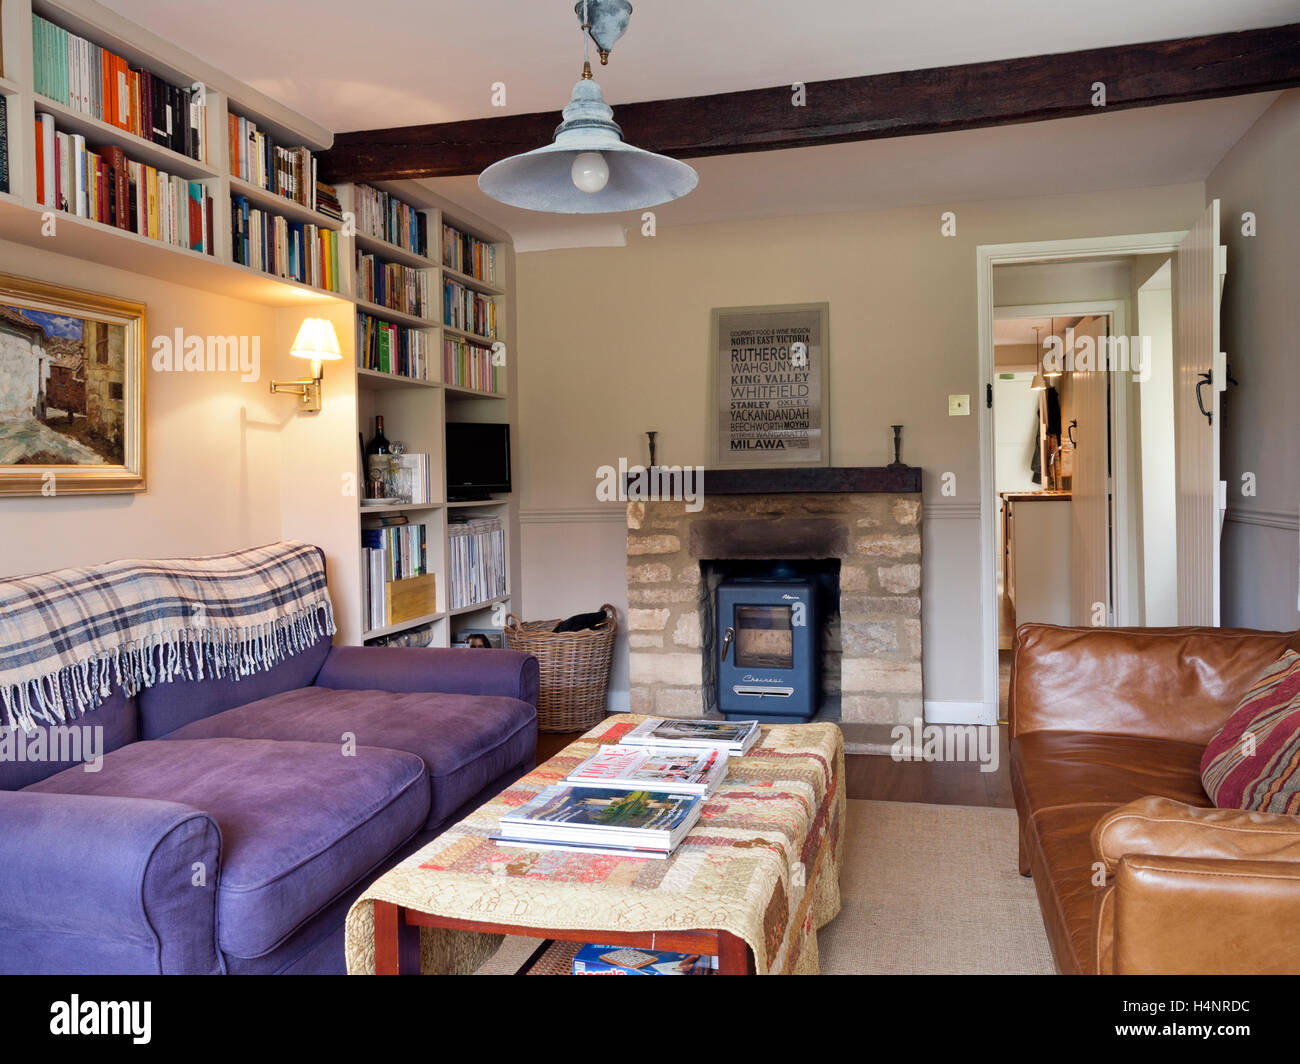 A Small Cottage Living Room With A Stylish Stove In The Fireplace Stock Photo Alamy